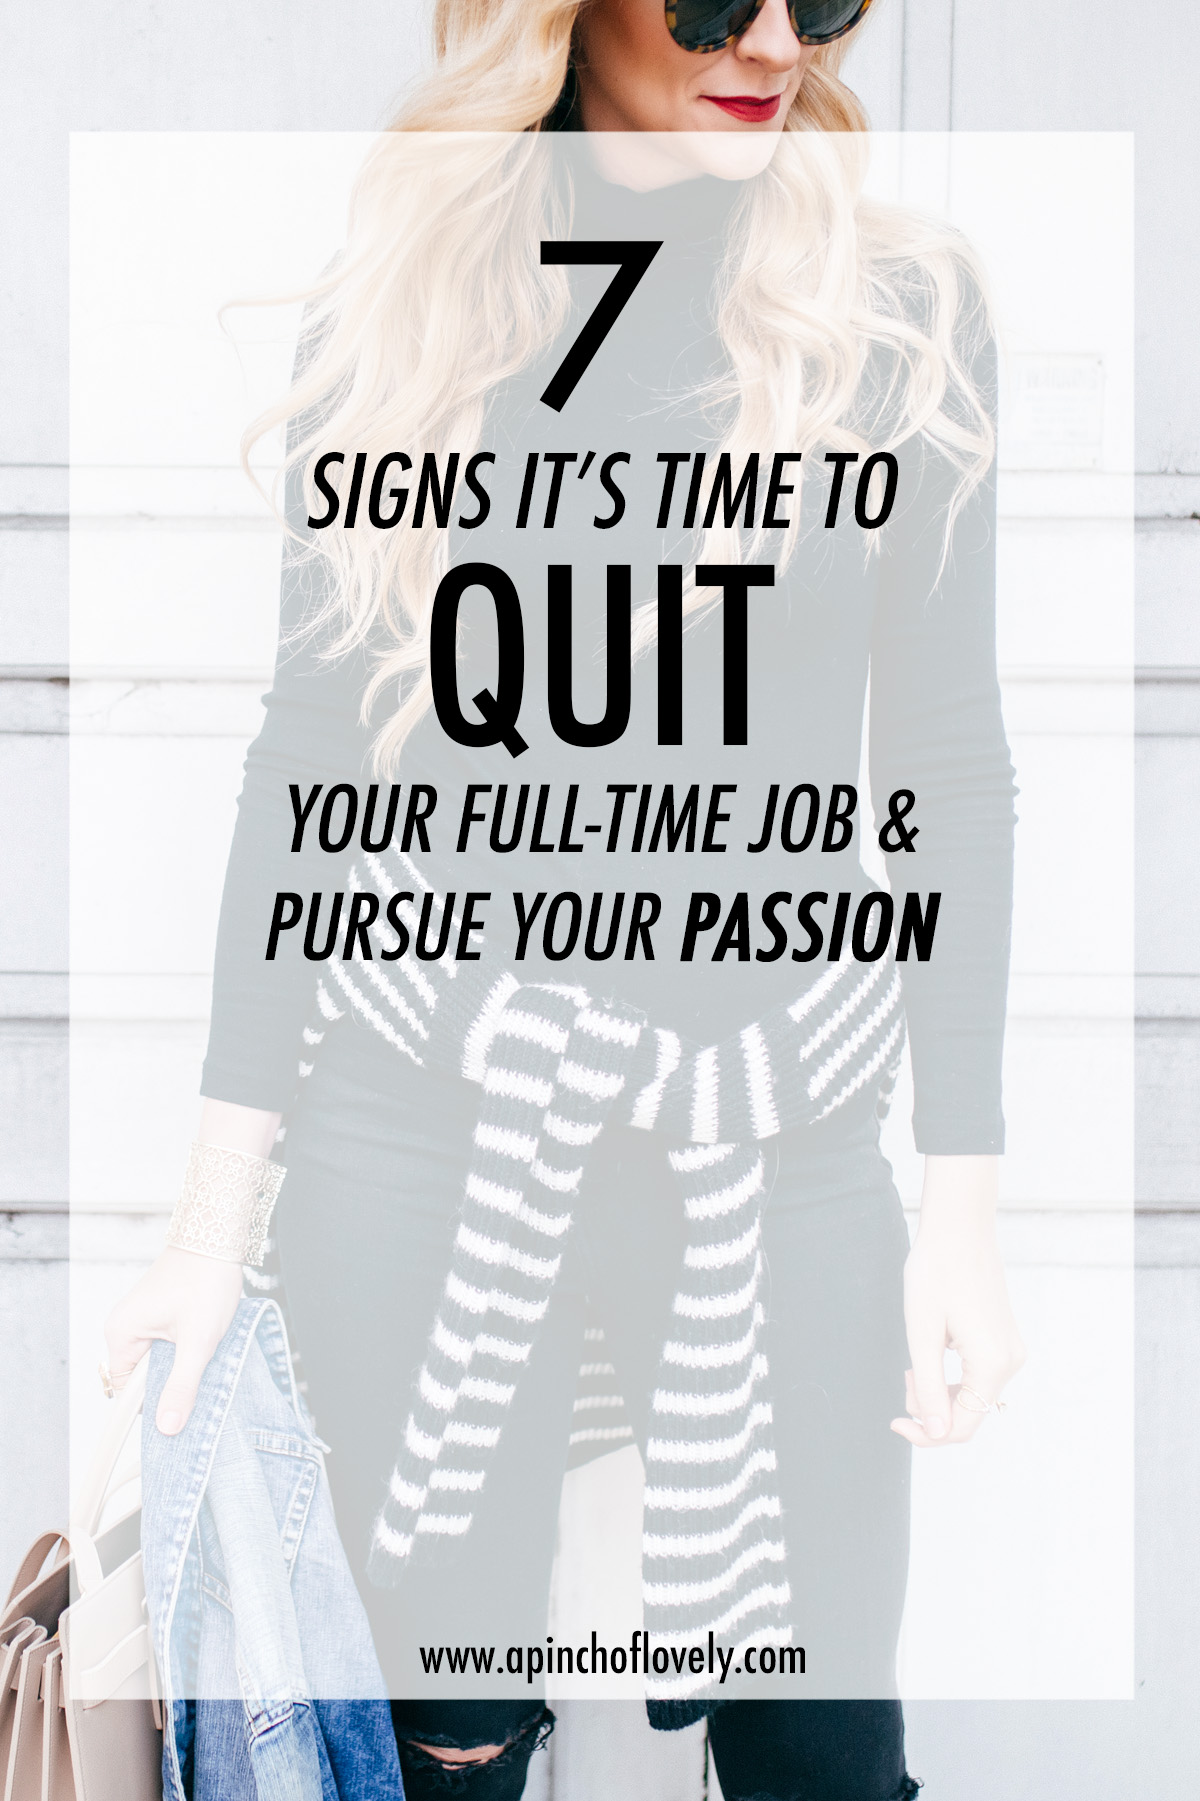 How To Know When To Quit Your Full-Time Job & Pursue Your Passion